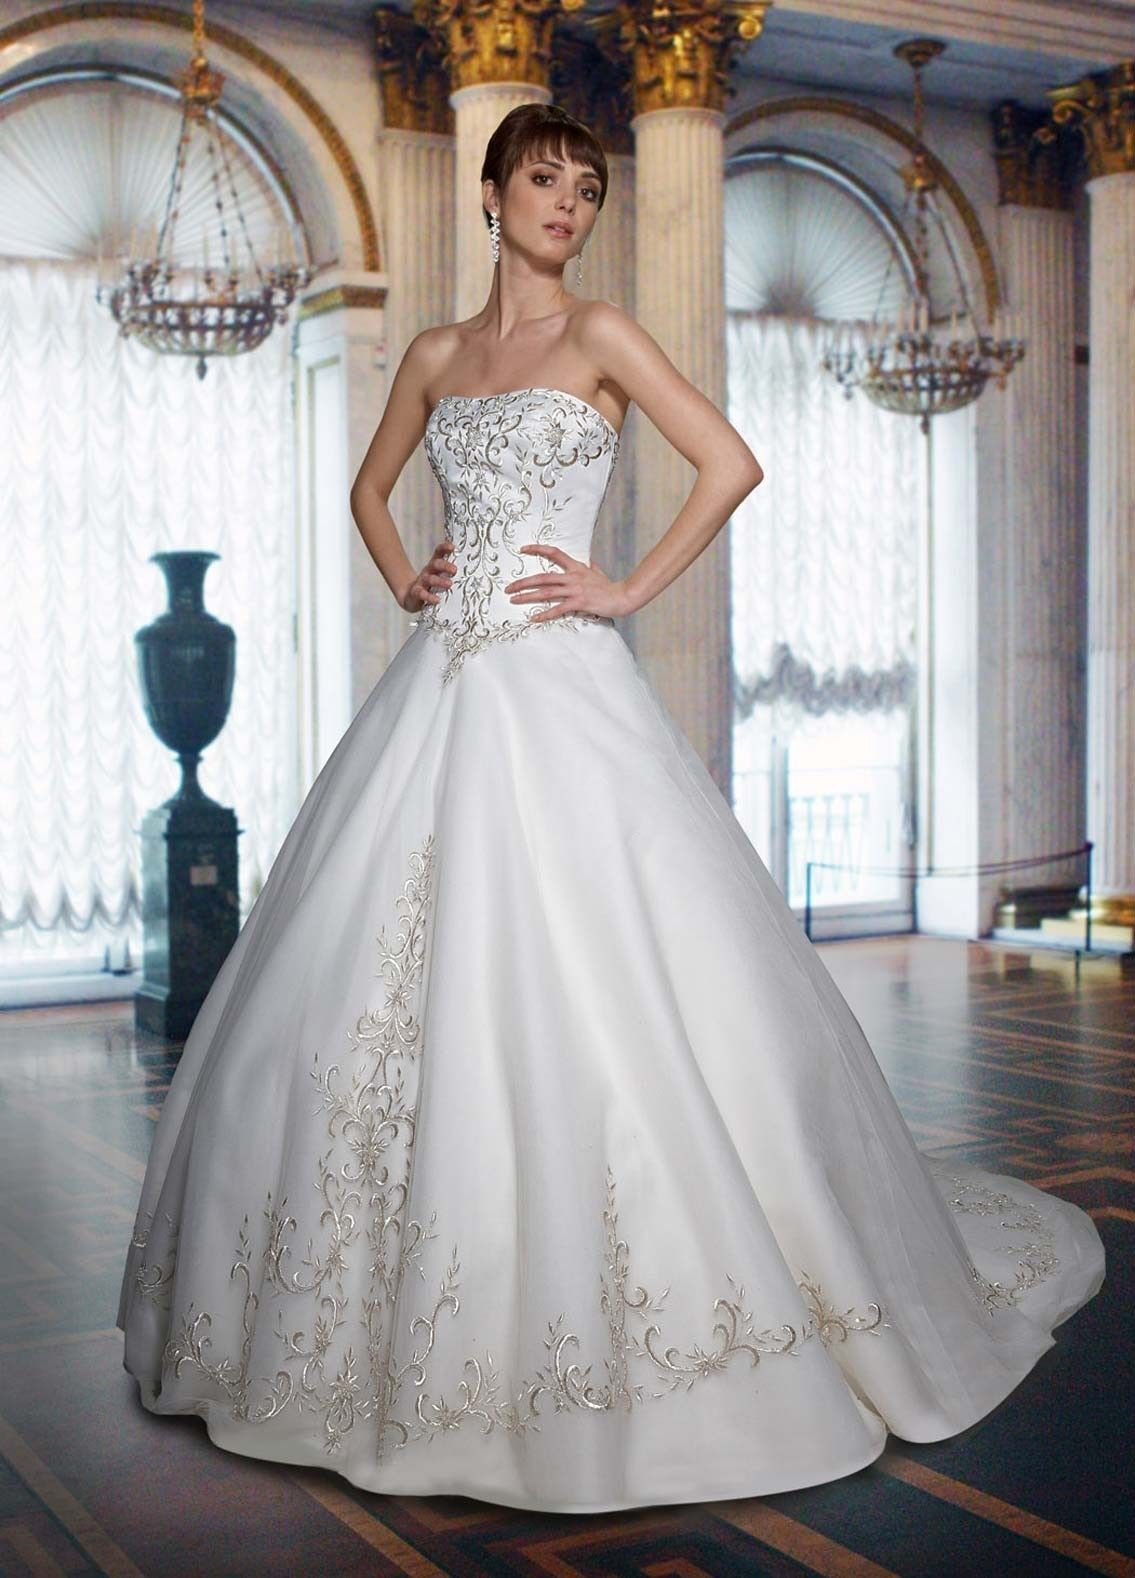 Satin ball gown strapless straight neckline embroidered bodice